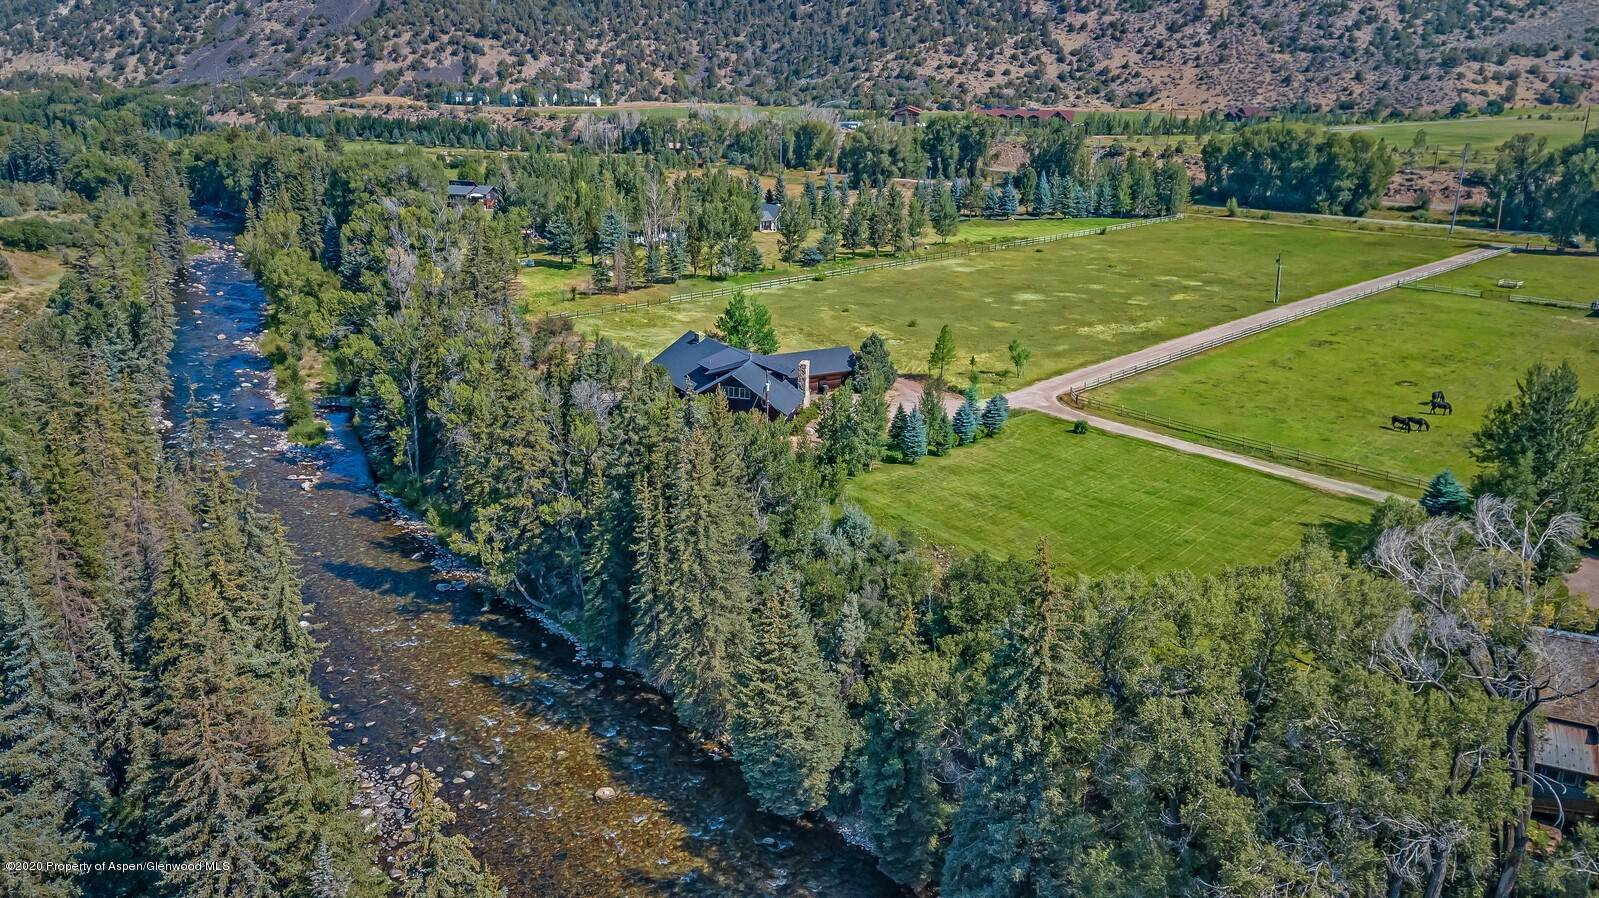 Single Family Home for Sale at 176 Letey Lane Woody Creek, Colorado,81656 United States